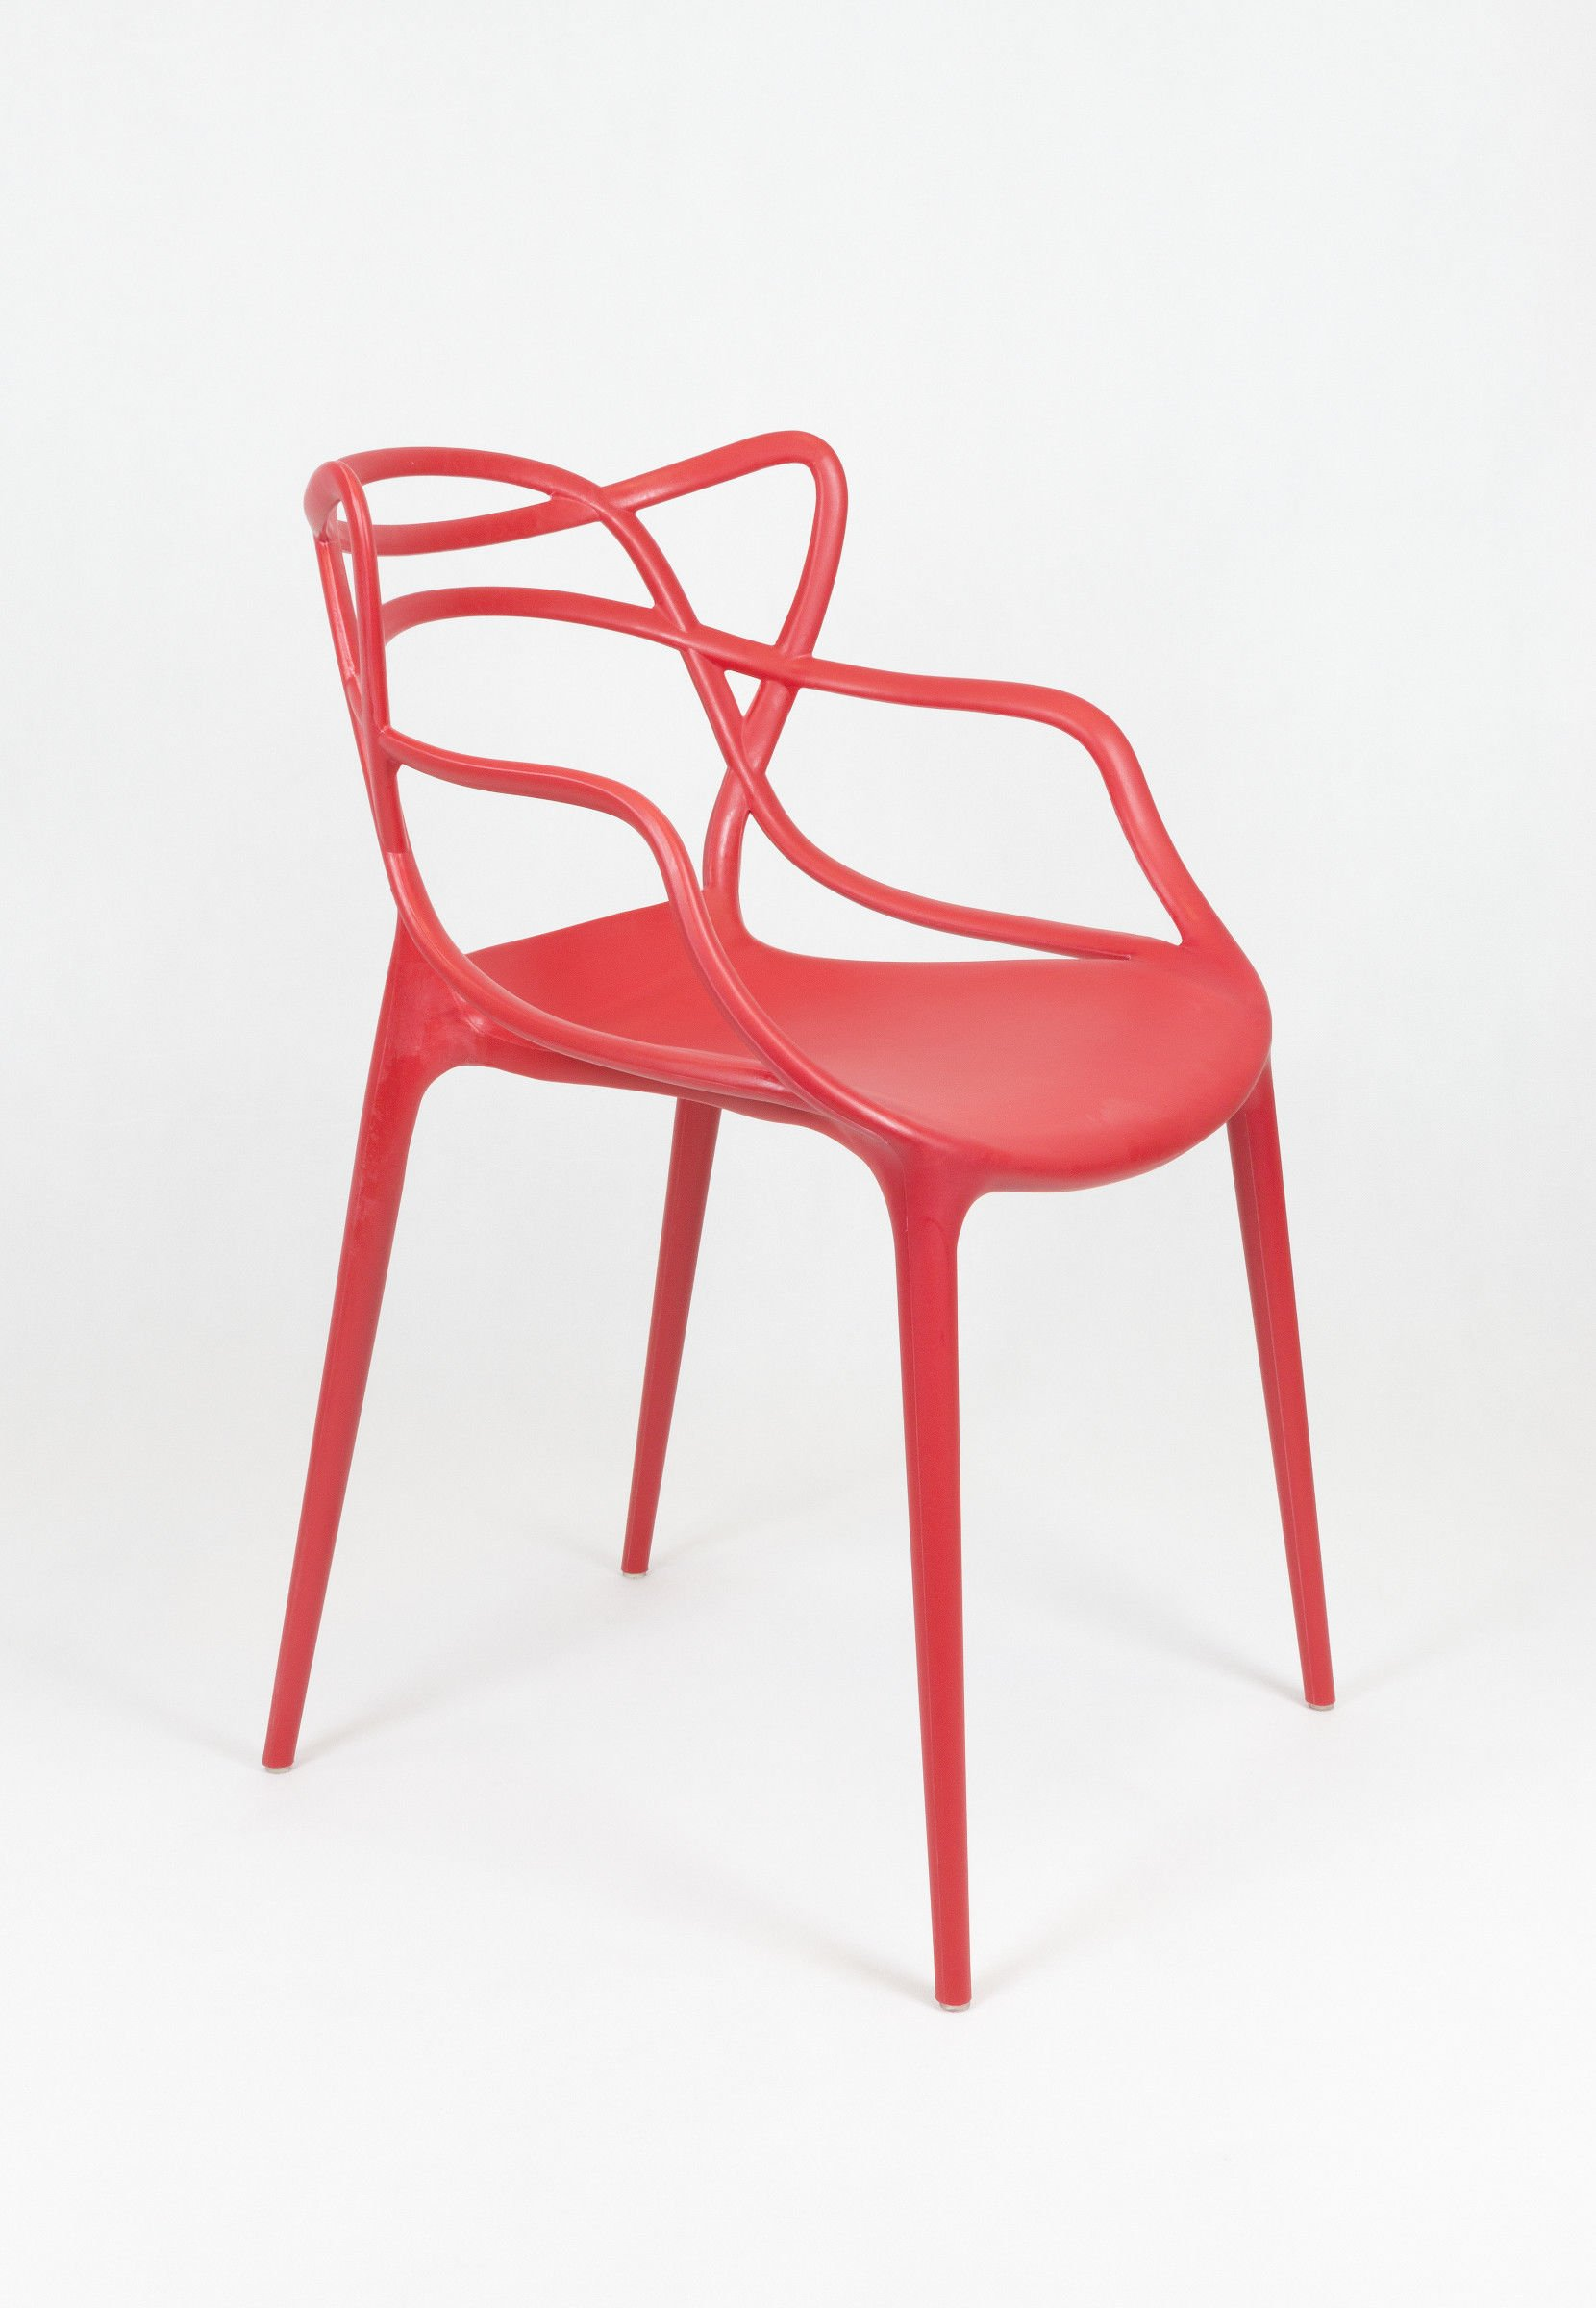 Sk design kr013 red chair red offer chairs living room for The garden design sk